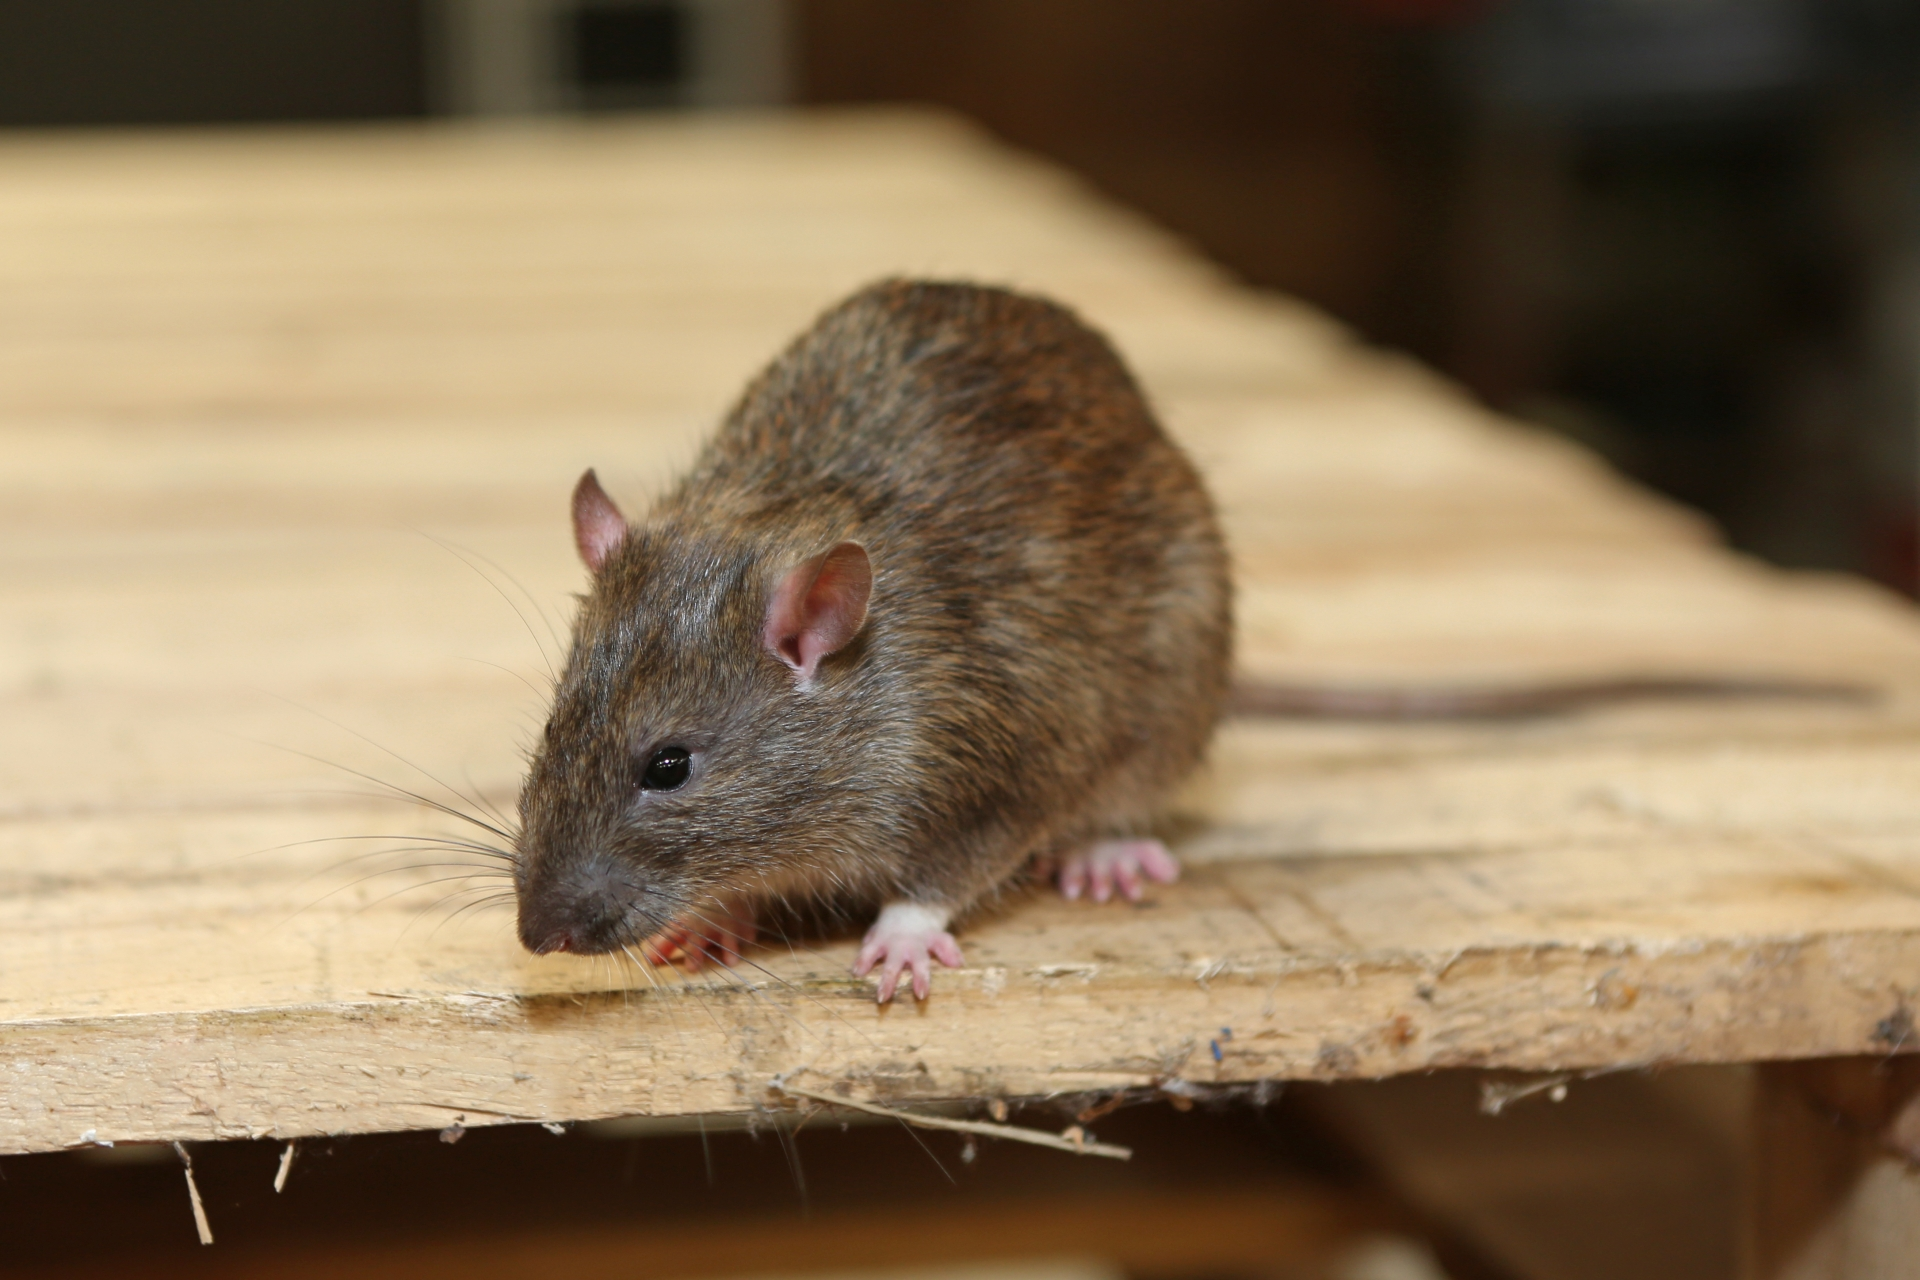 Rat Infestation, Pest Control in Clapham, SW4. Call Now 020 8166 9746